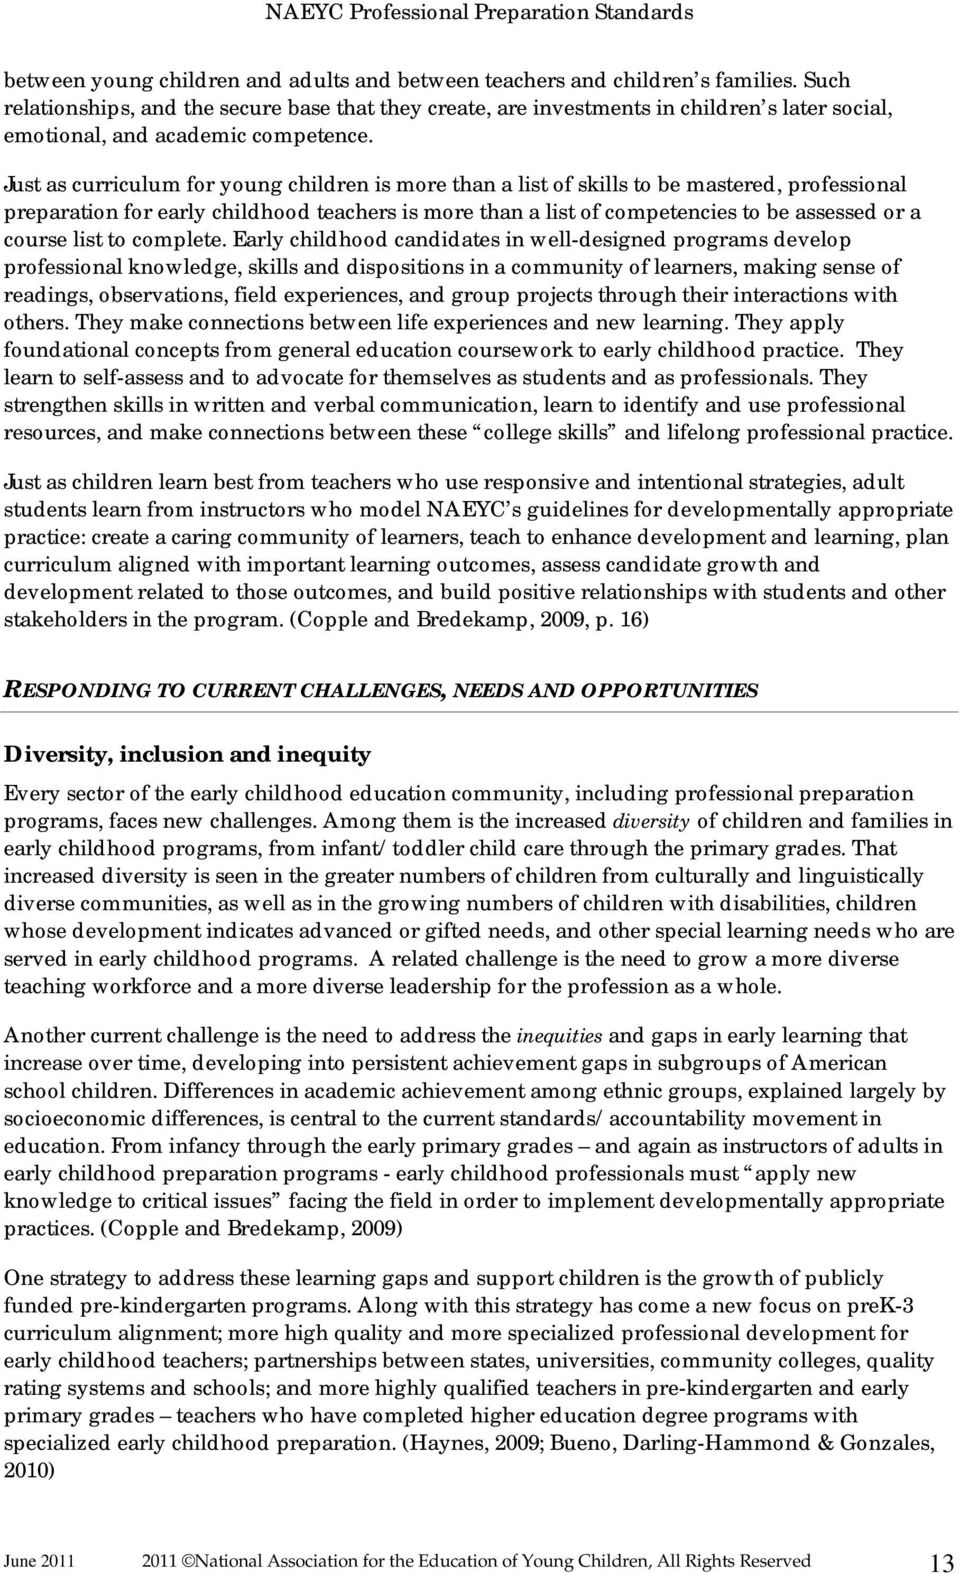 2010 NAEYC Standards for Initial & Advanced Early Childhood